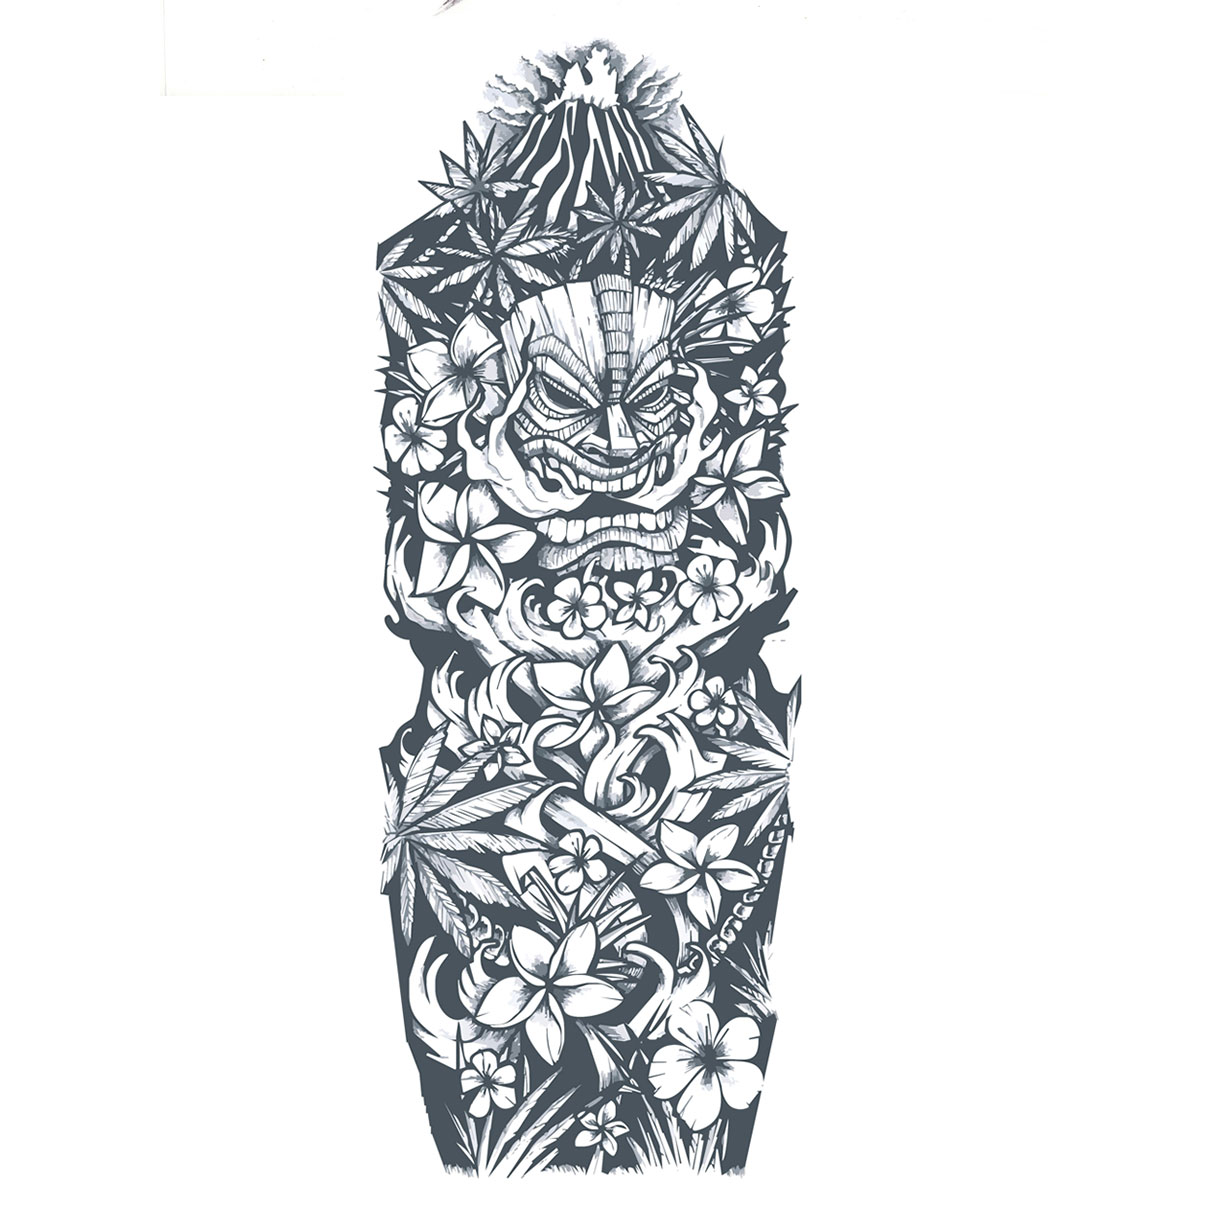 Tattoo Sleeve Stencils: Start Your Tattoo Design